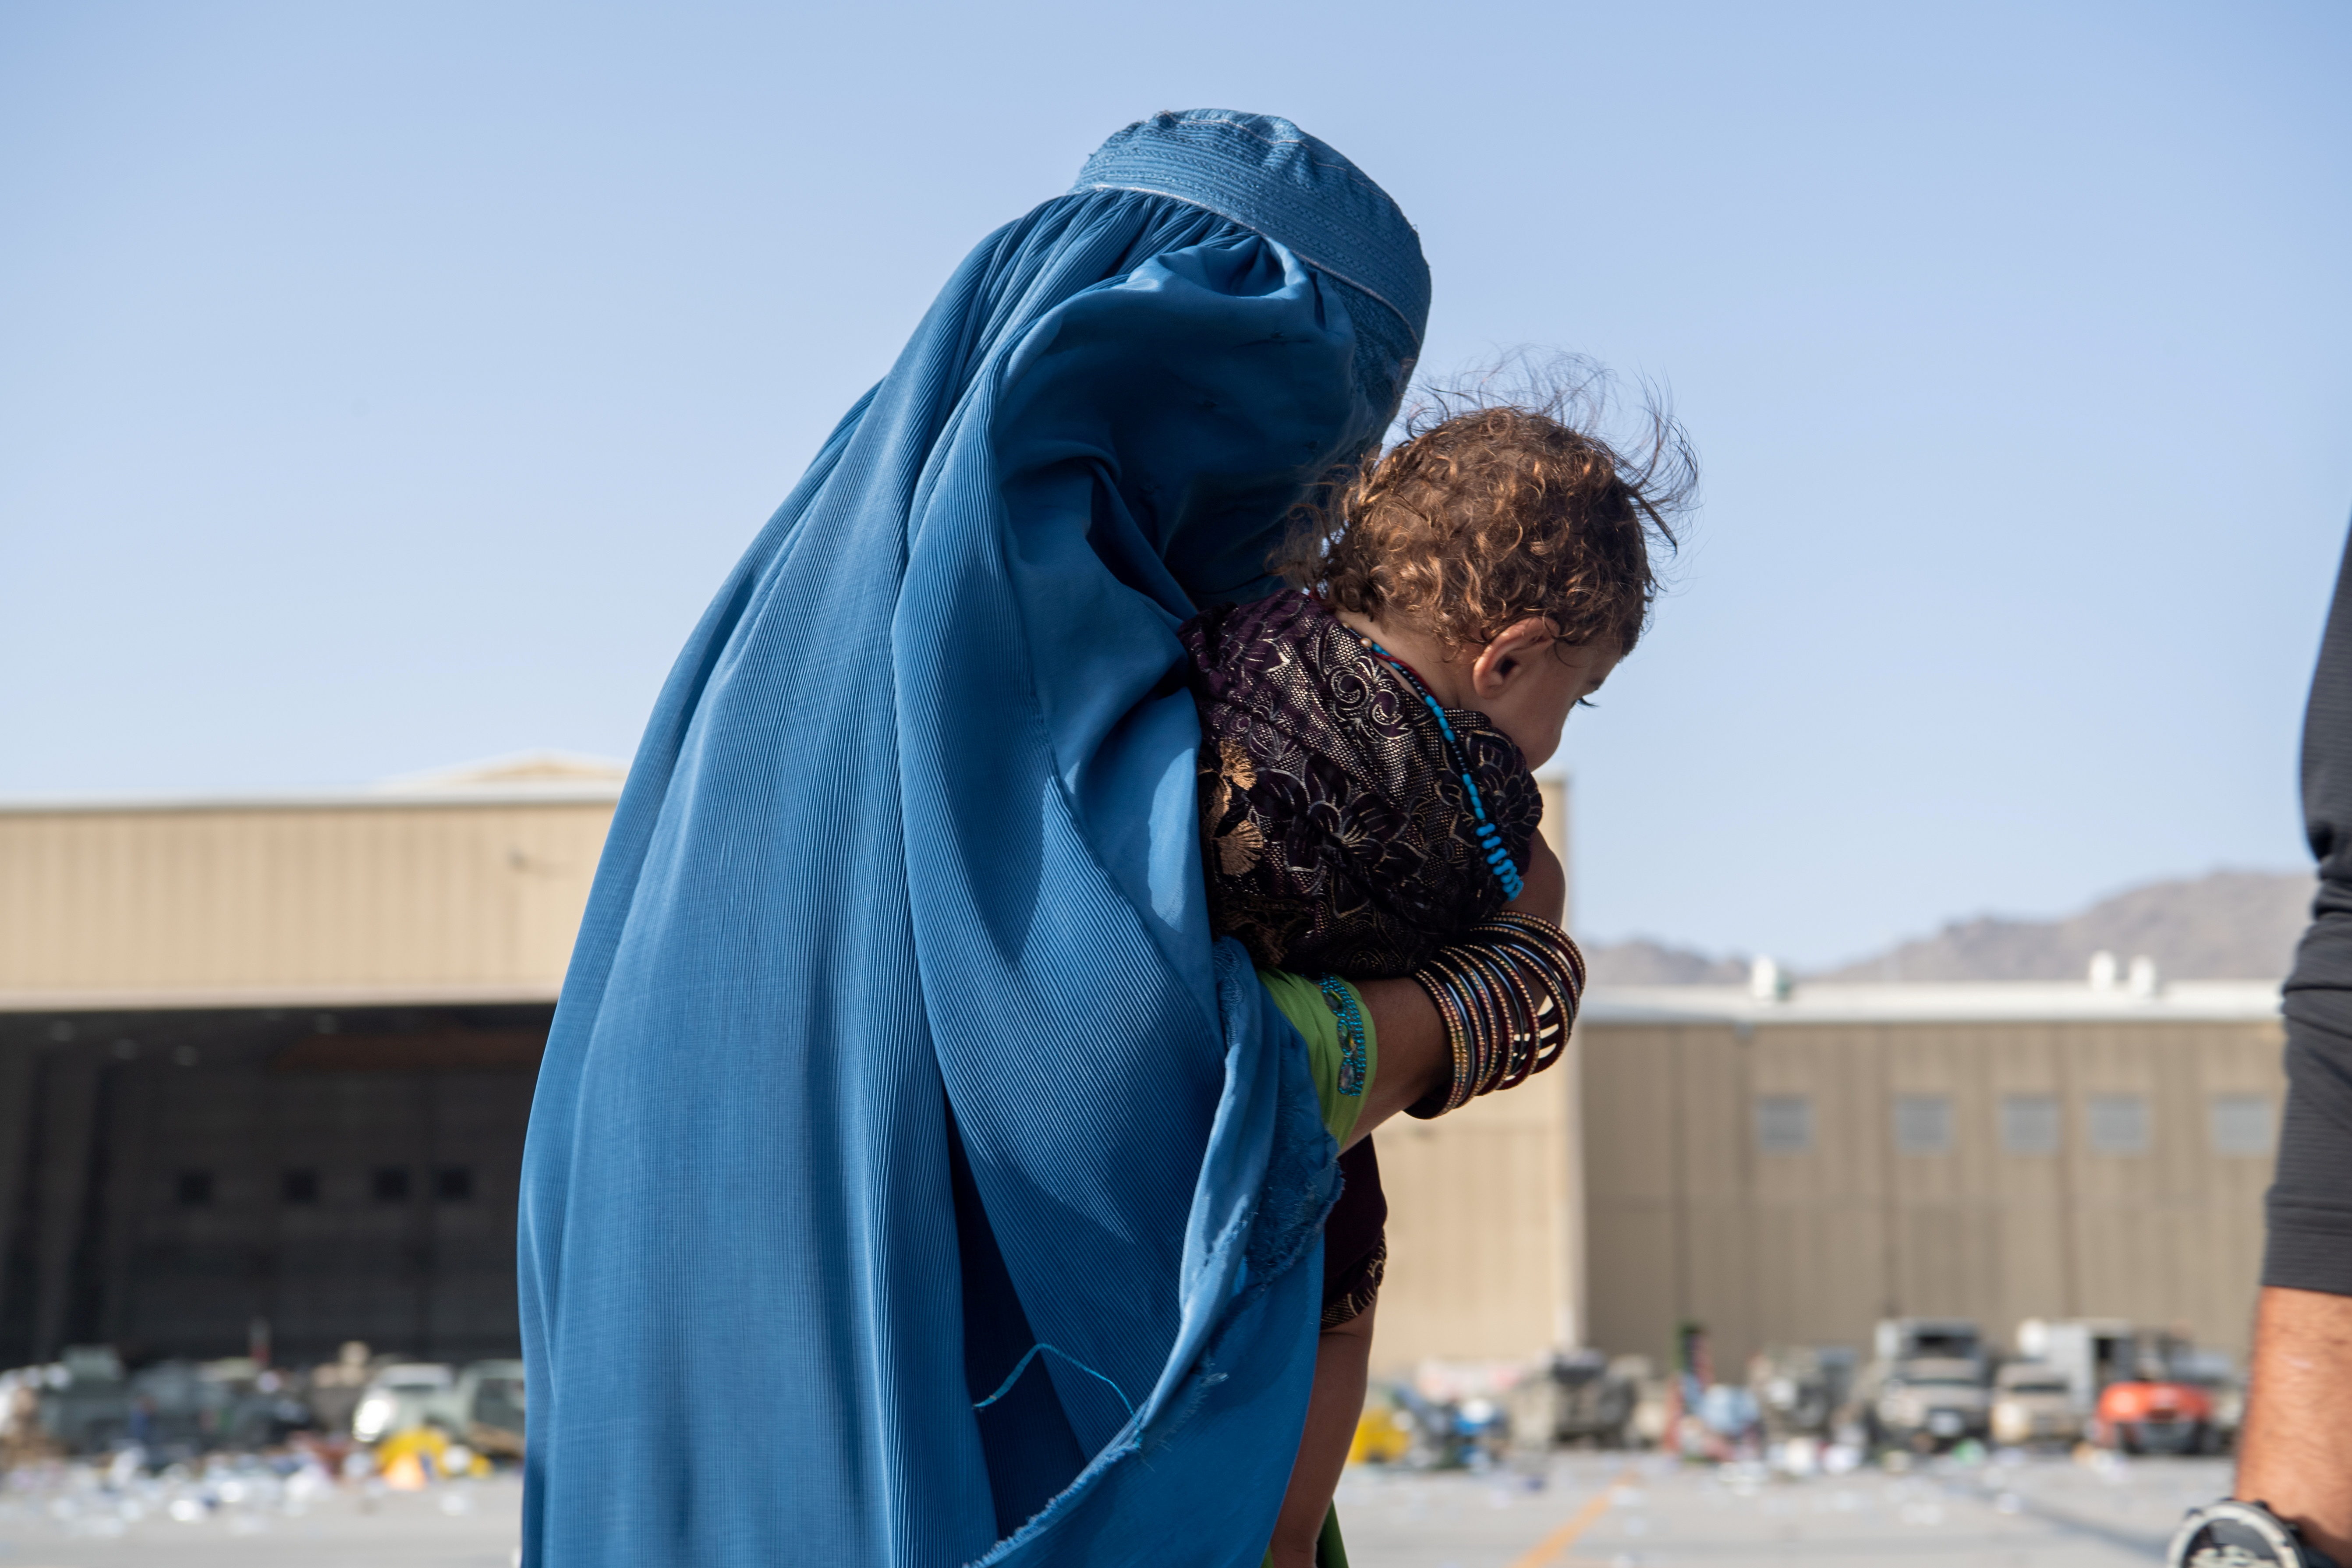 With hope of escape dashed, two Afghan women look to future under Taliban